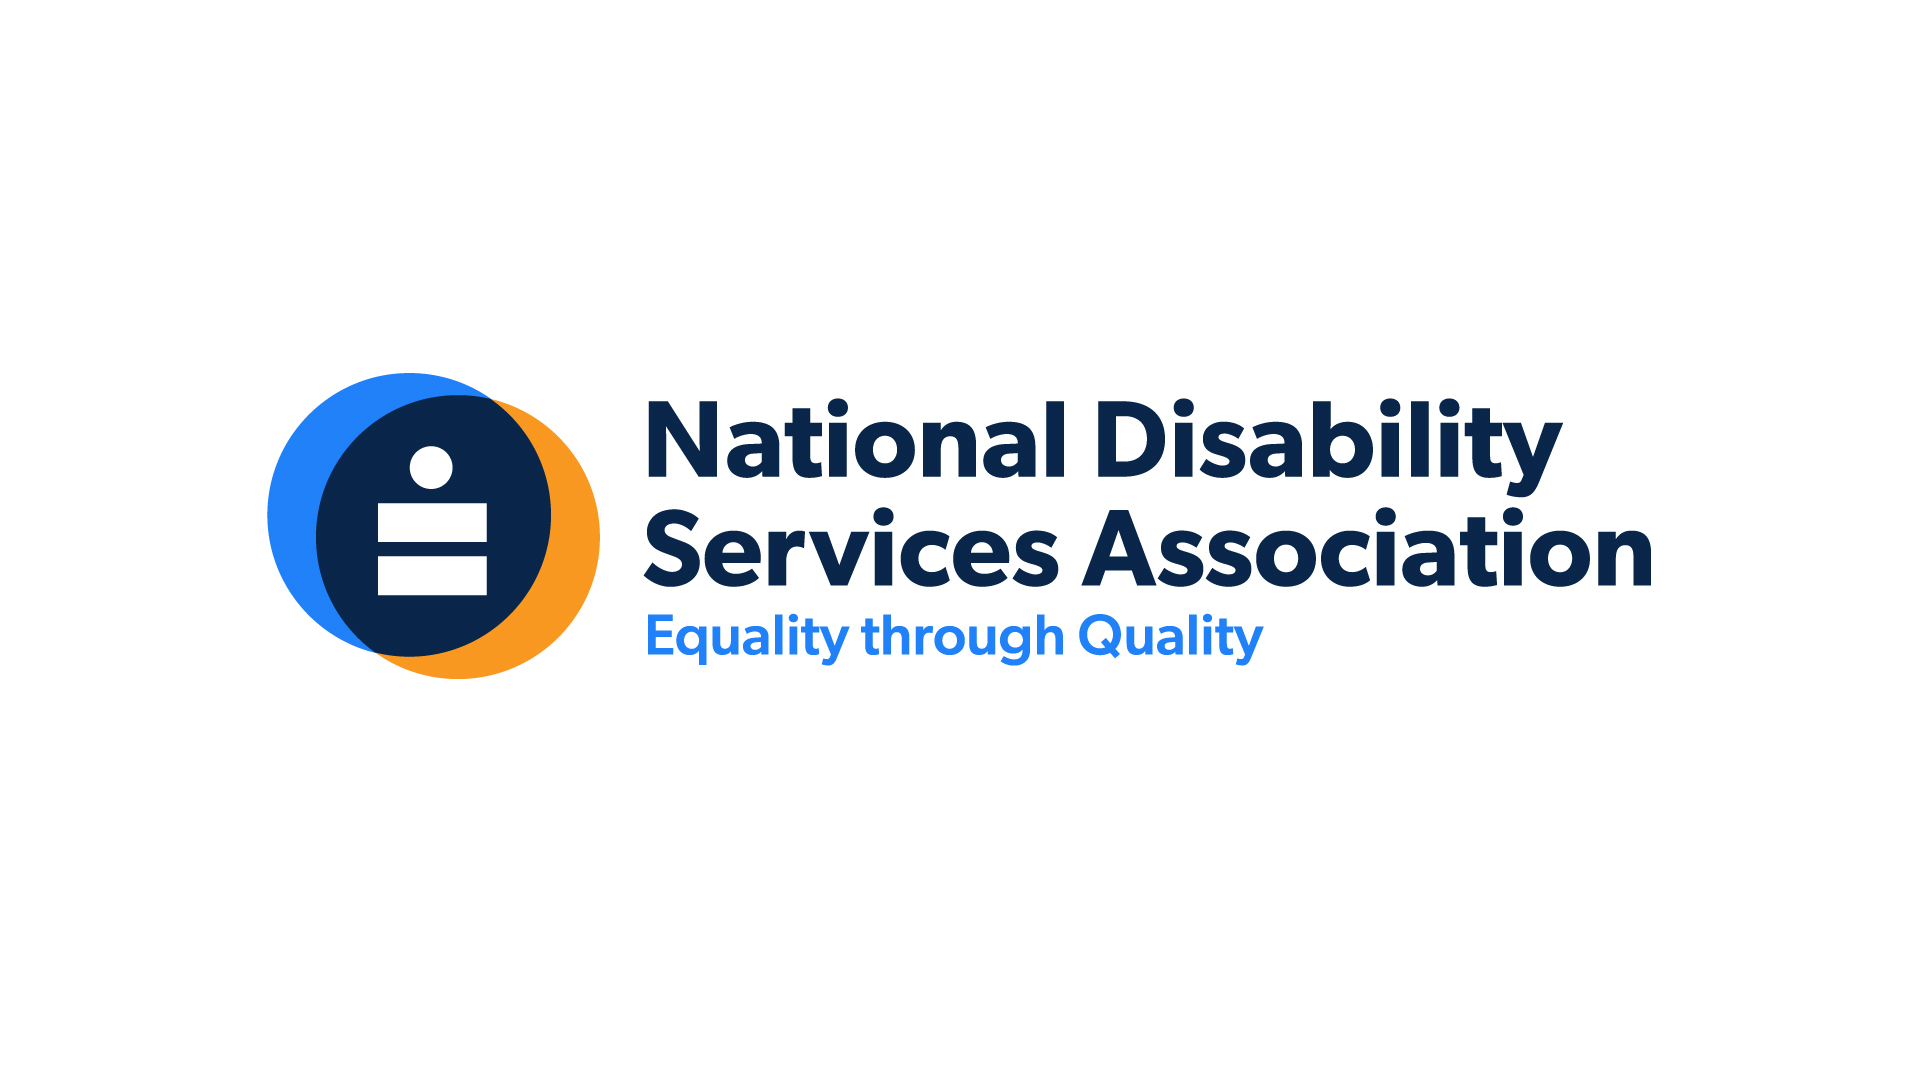 Cover image: National Disability Services Association